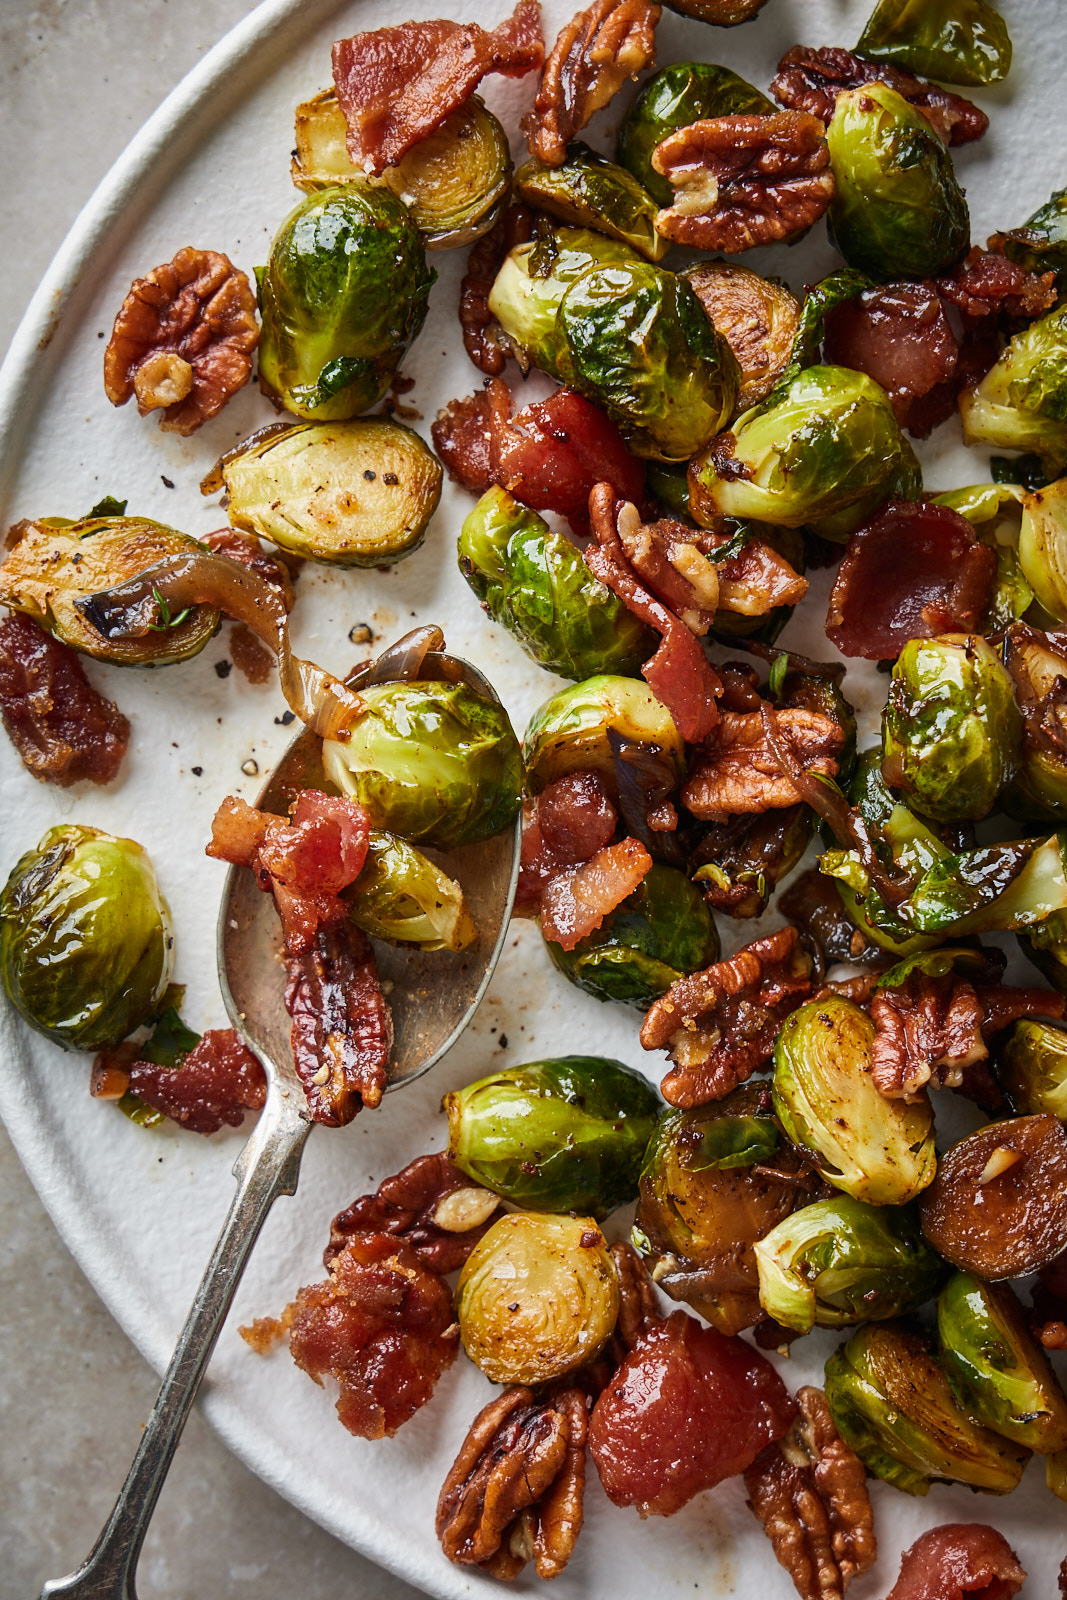 Roasted Brussel Sprouts With Candied Pecans and Bacon